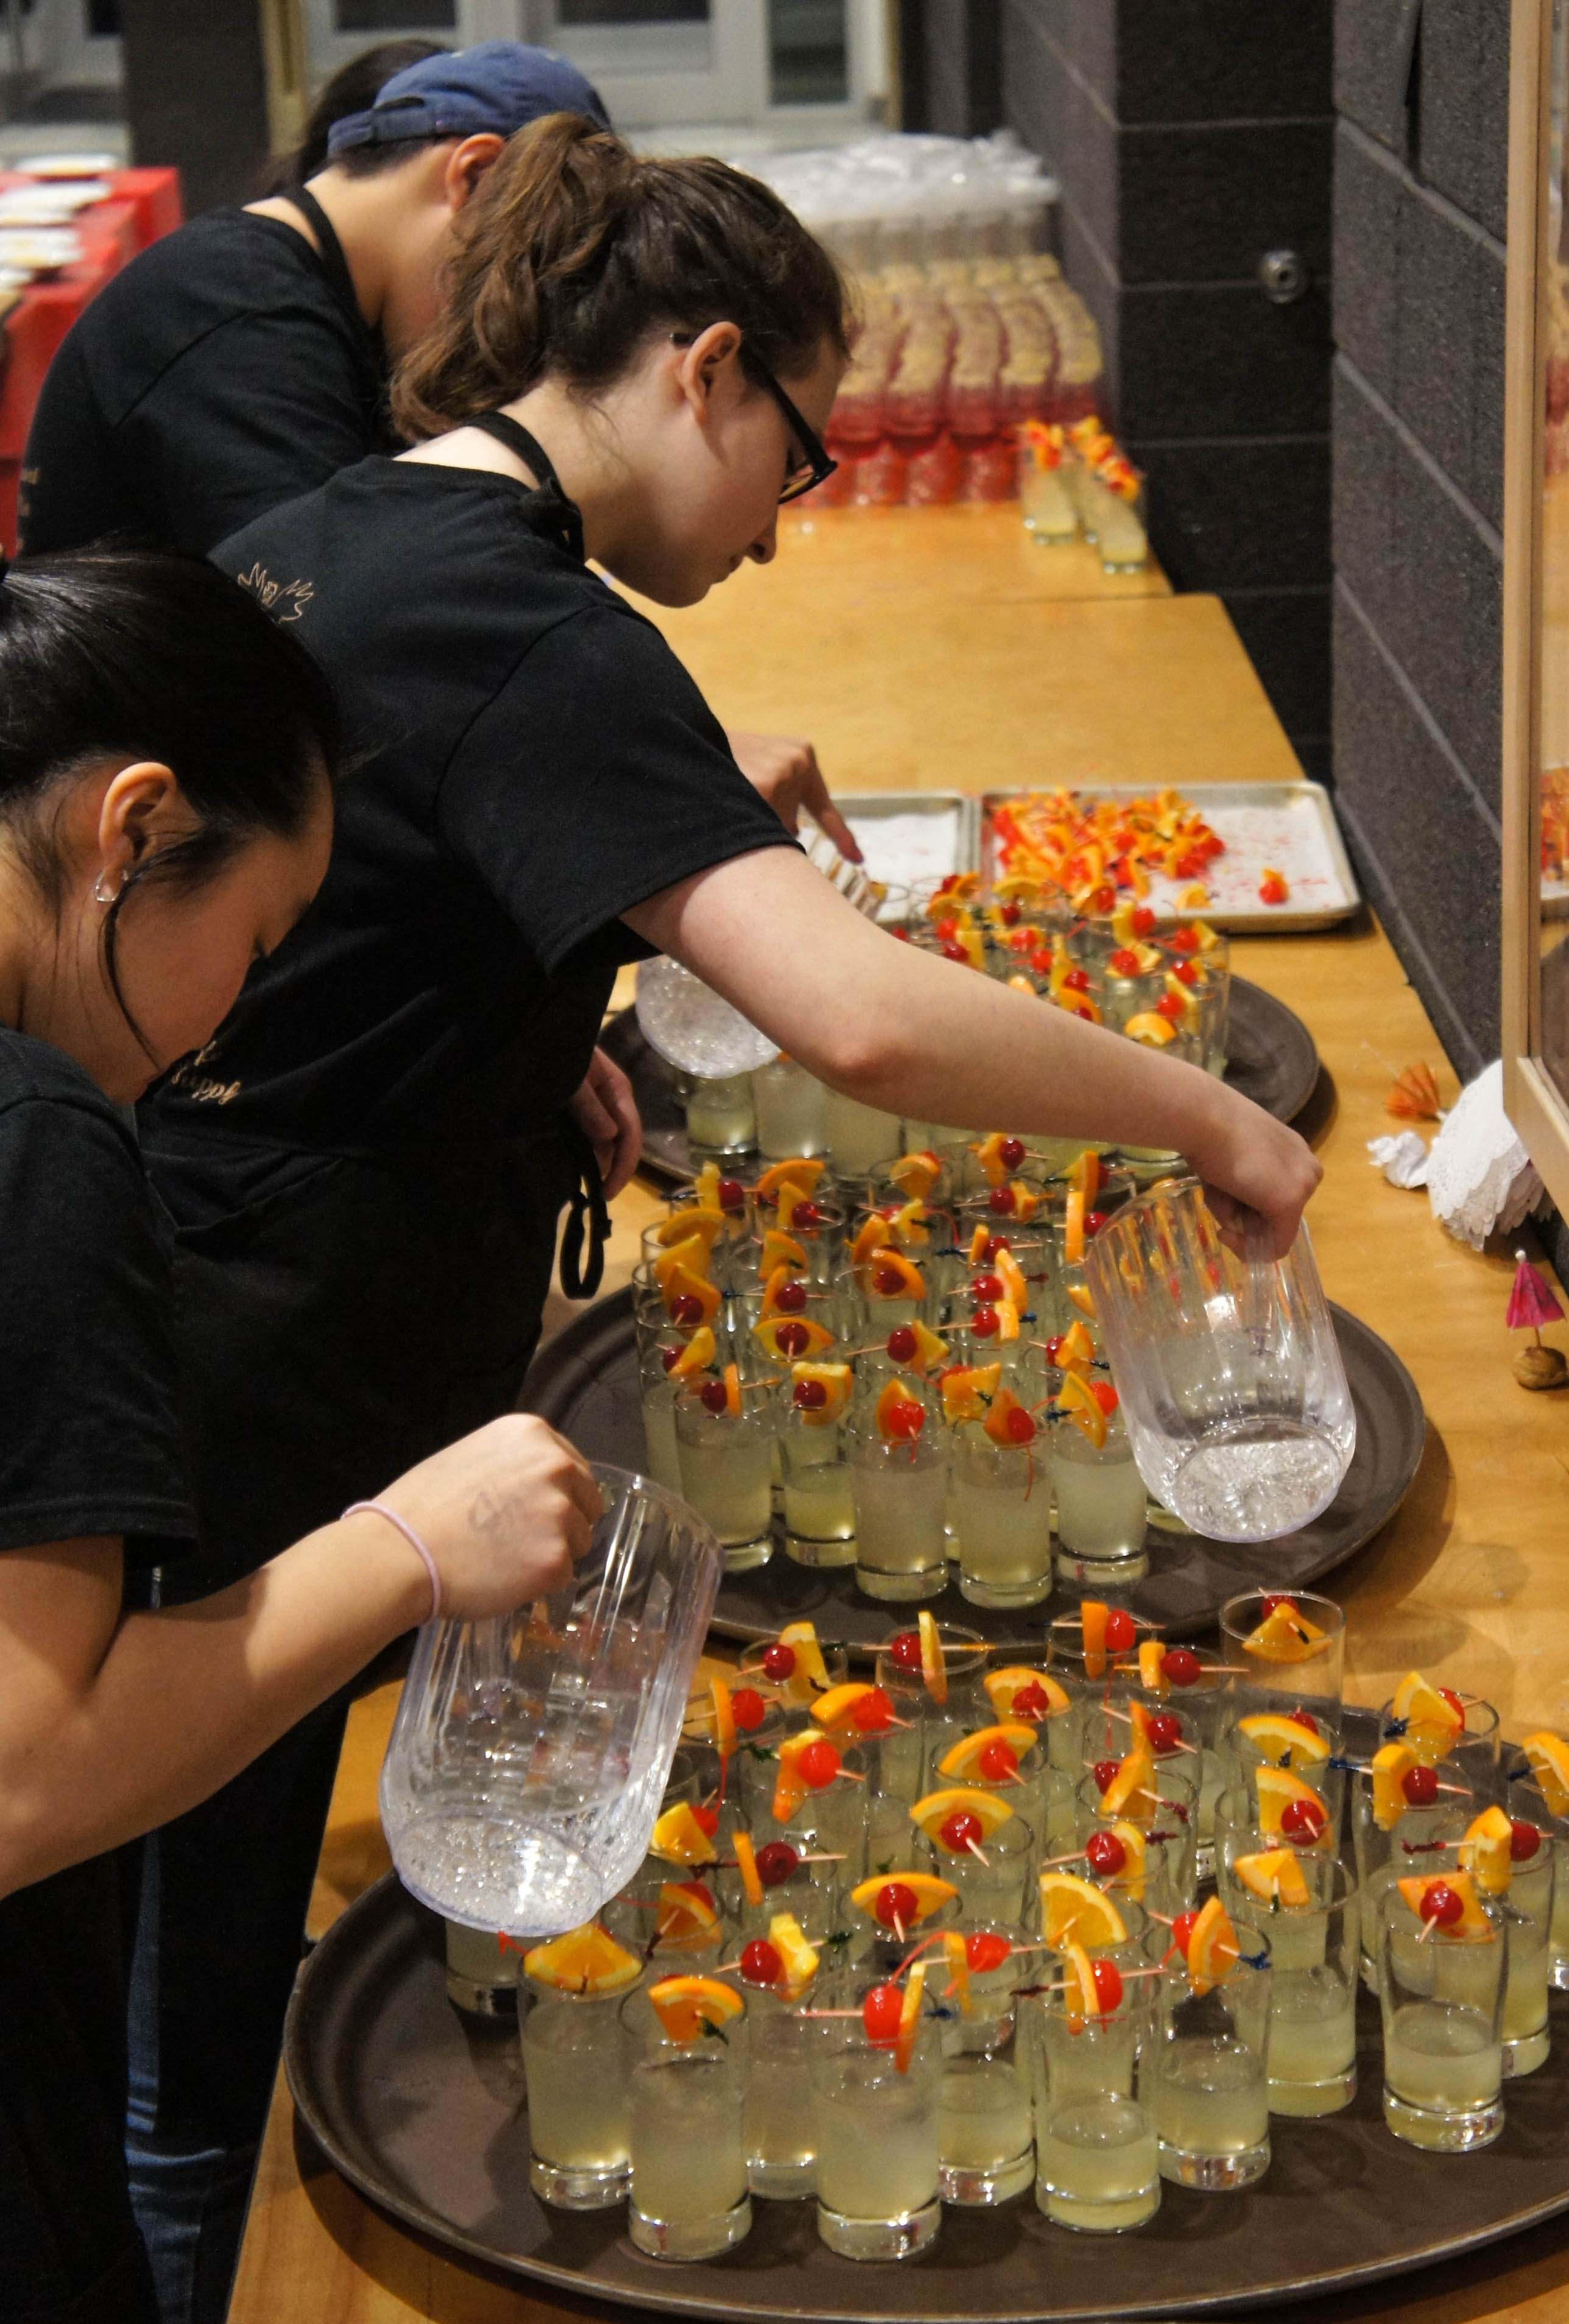 Students get busy preparing mocktails for guests. Photo by Katie Shapiro, Ottawa Magazine.